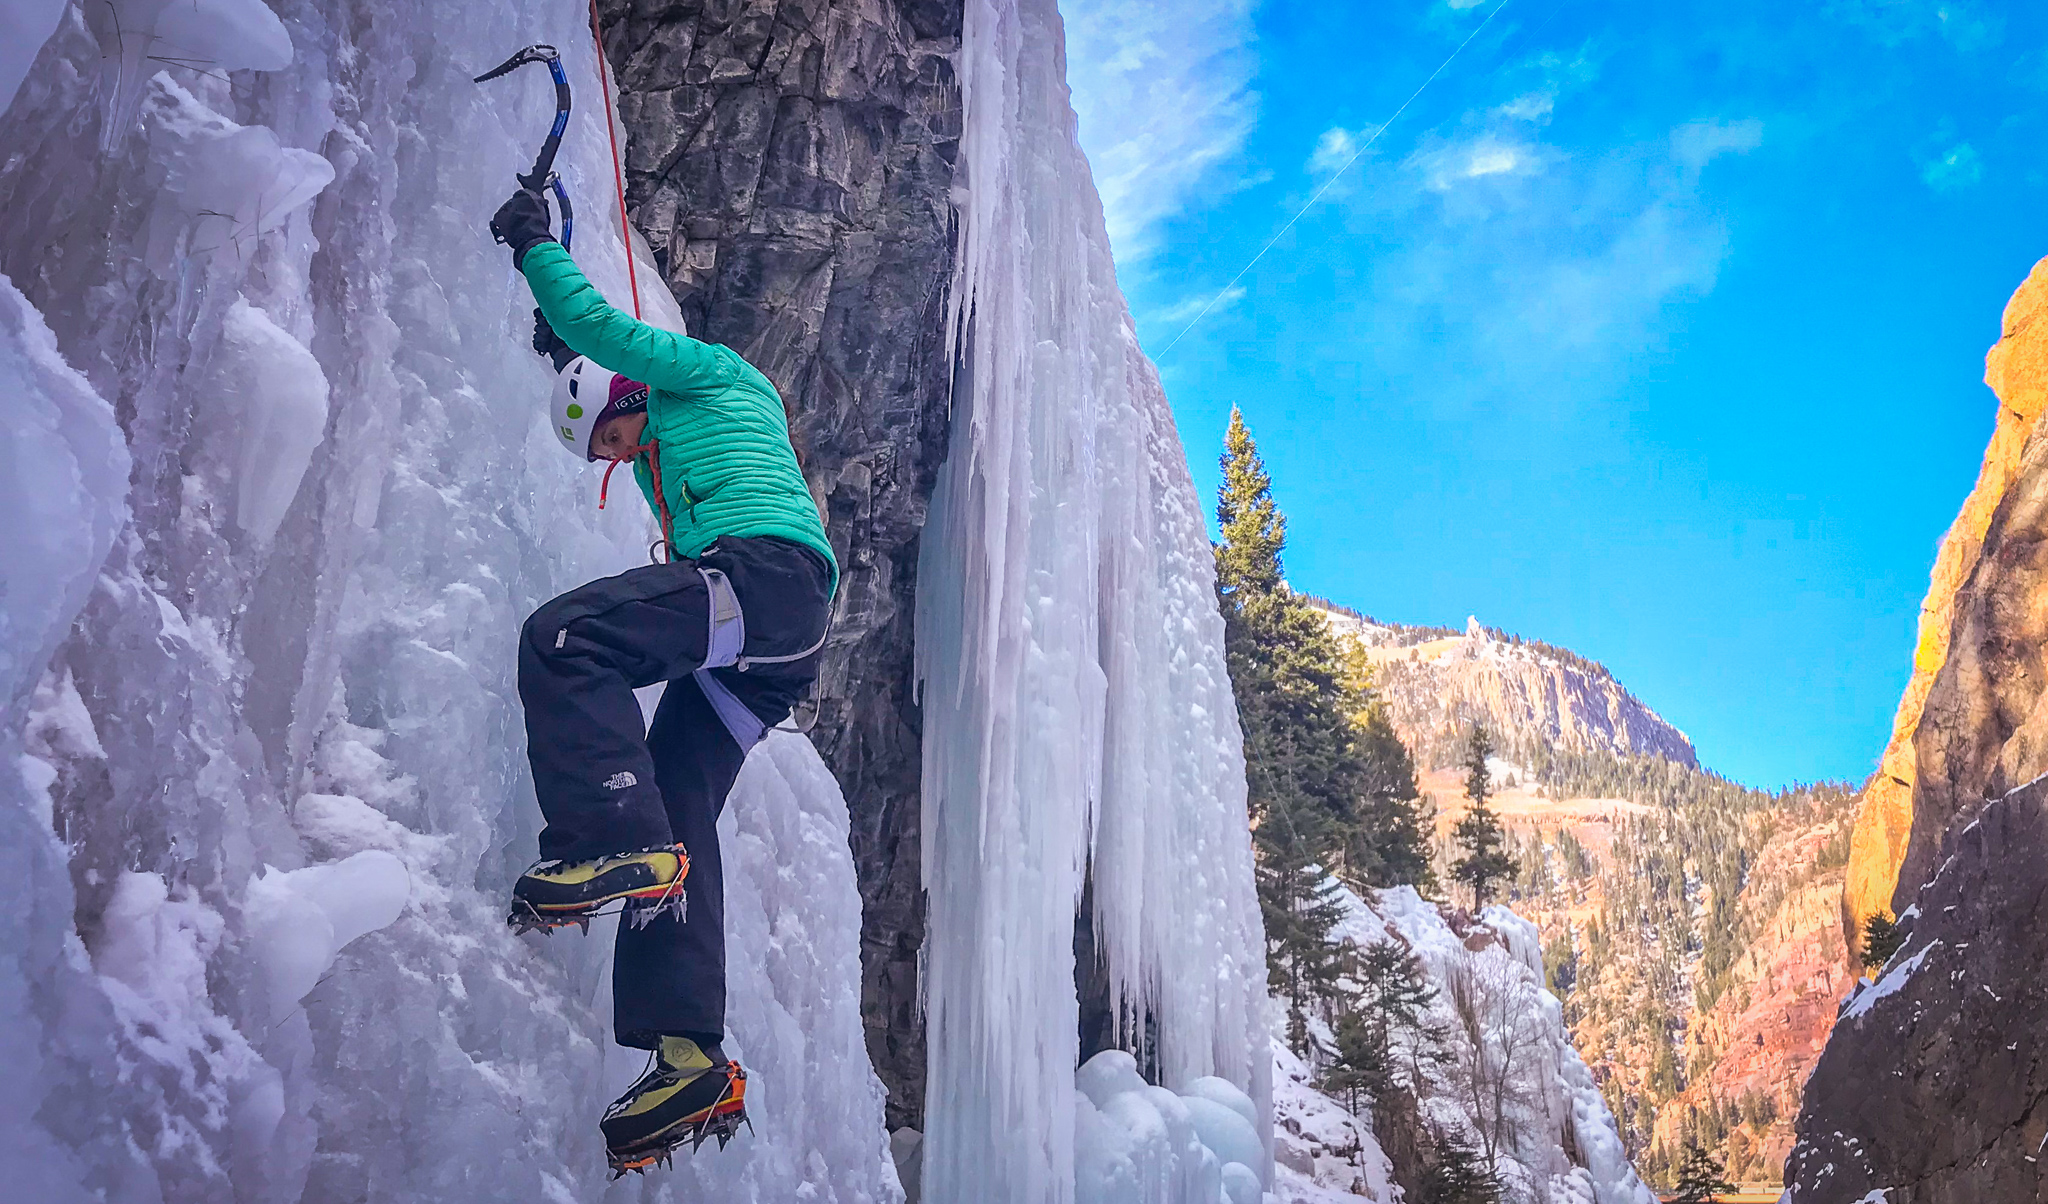 64fd728bdf3 Everything you need to know for your first day ice climbing in Ouray Ice  Park